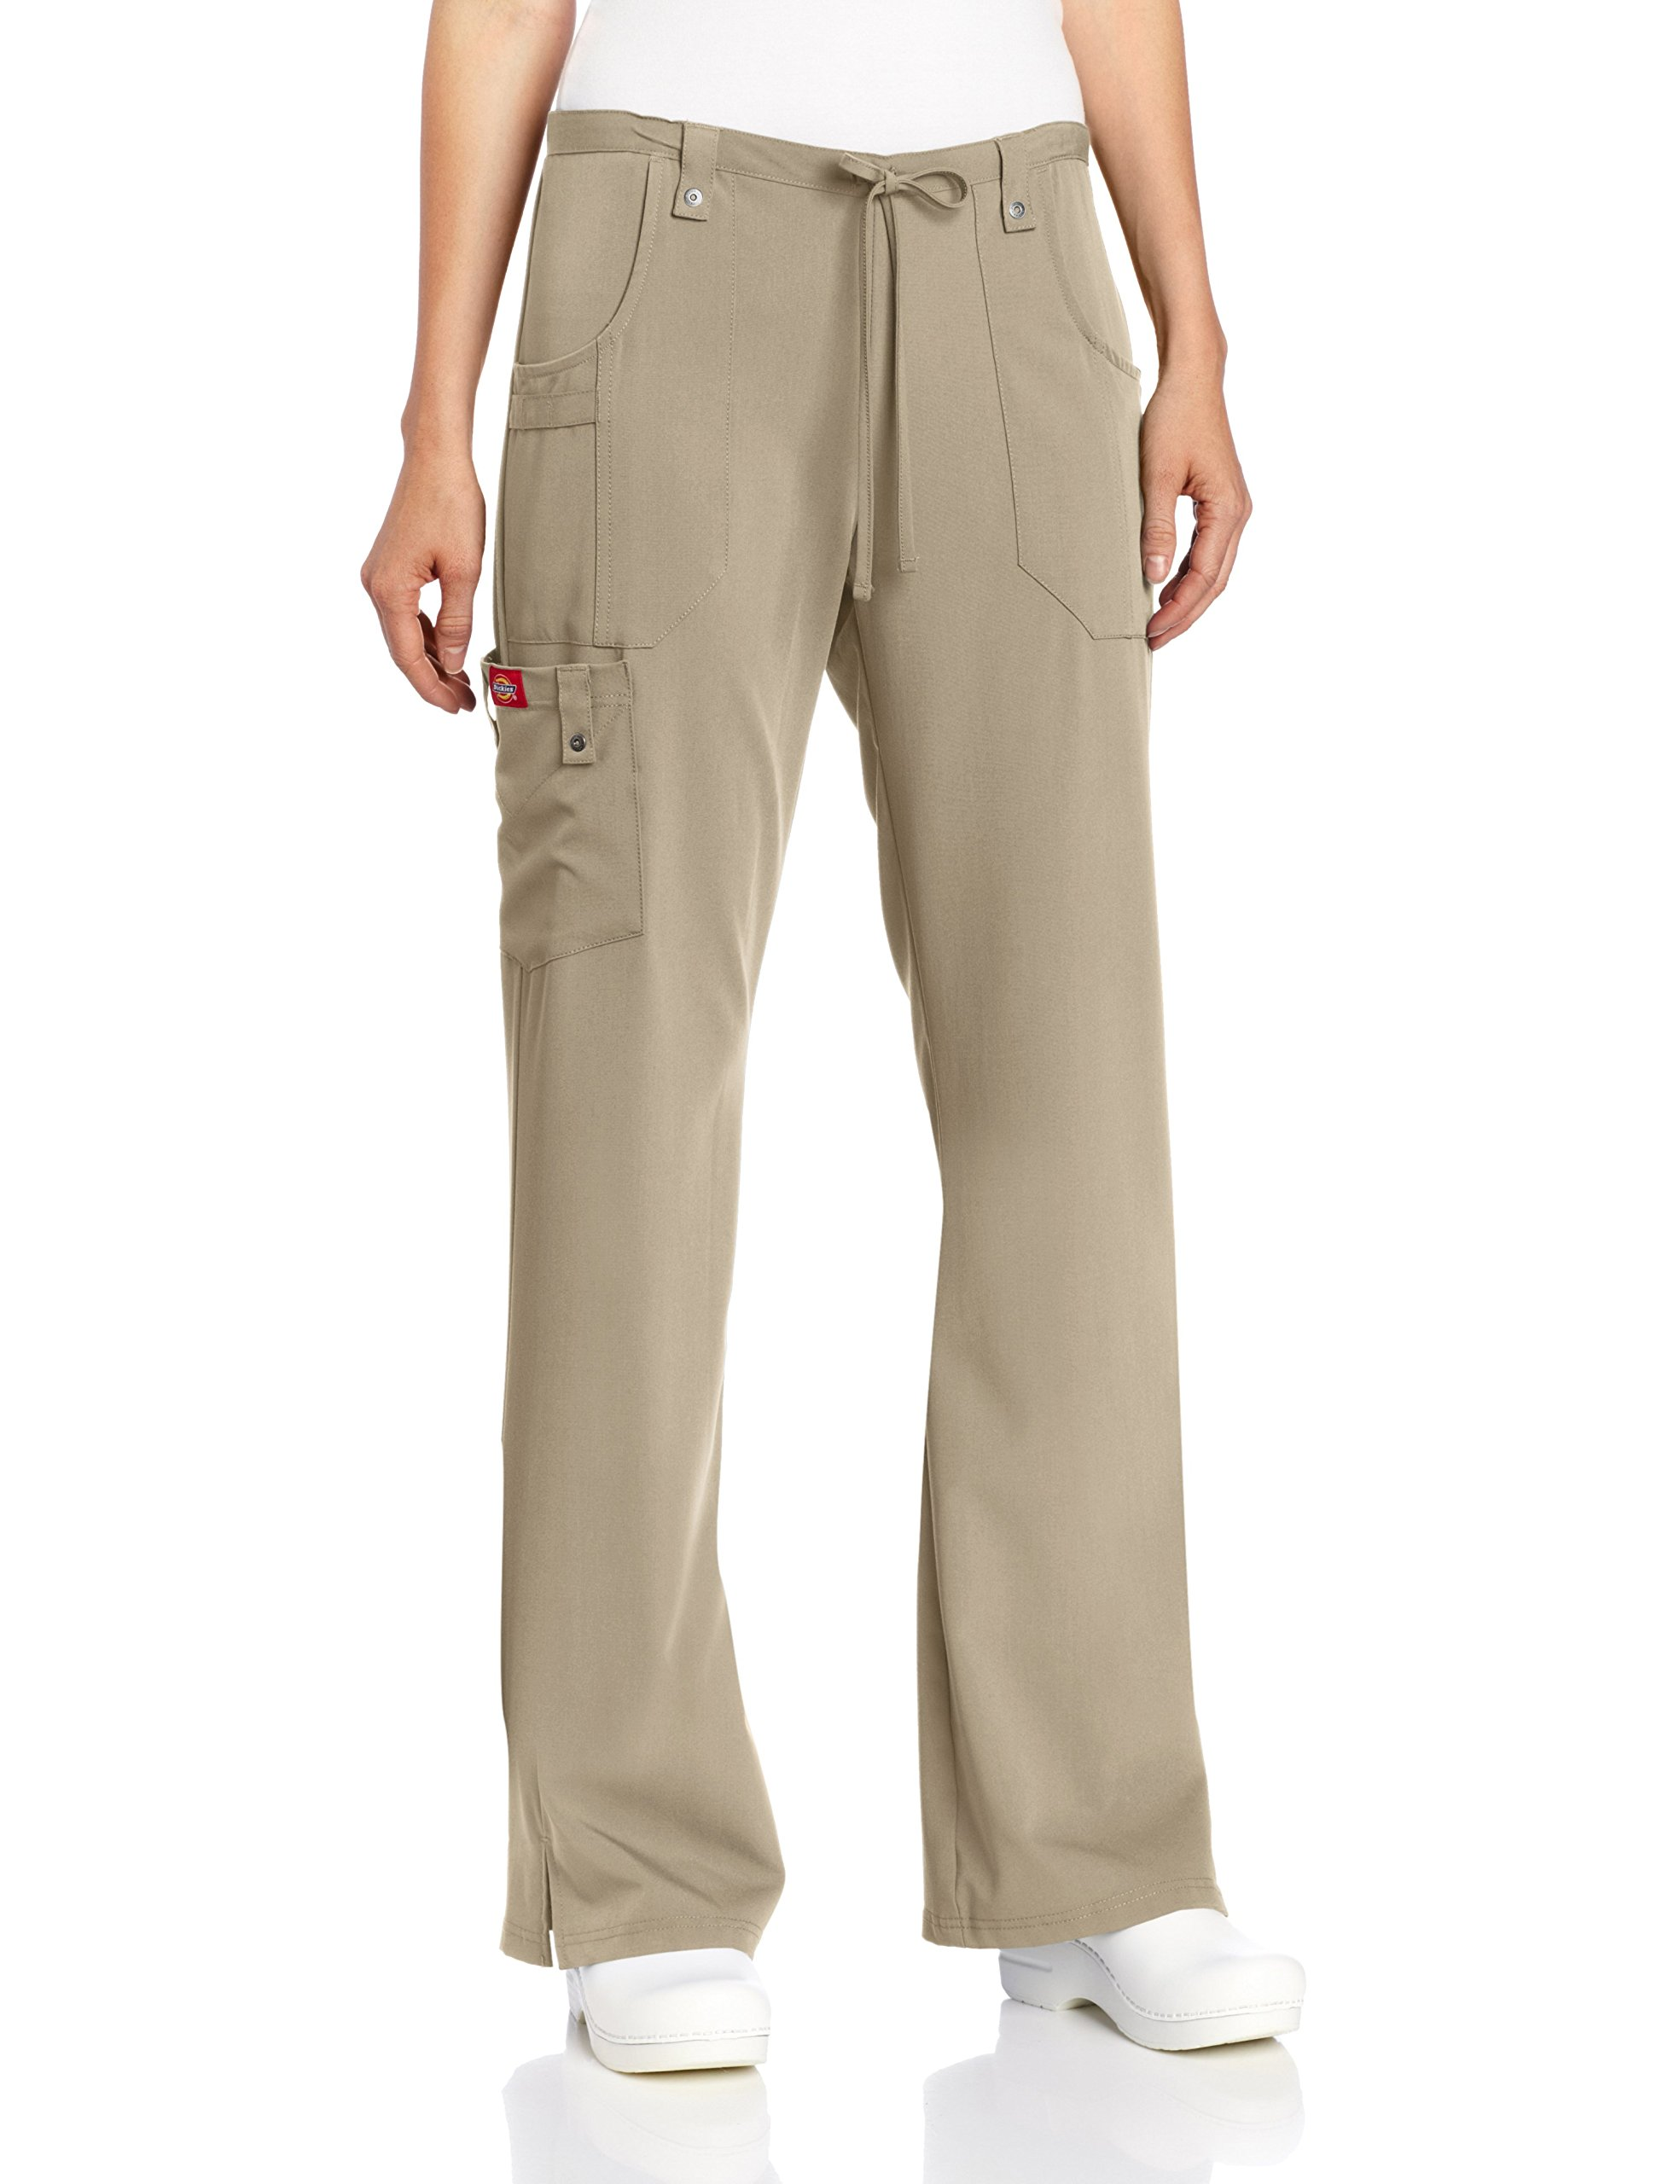 Dickies Women's Xtreme Stretch Fit Drawstring Flare Leg Pant, Dark Khaki, X-Large